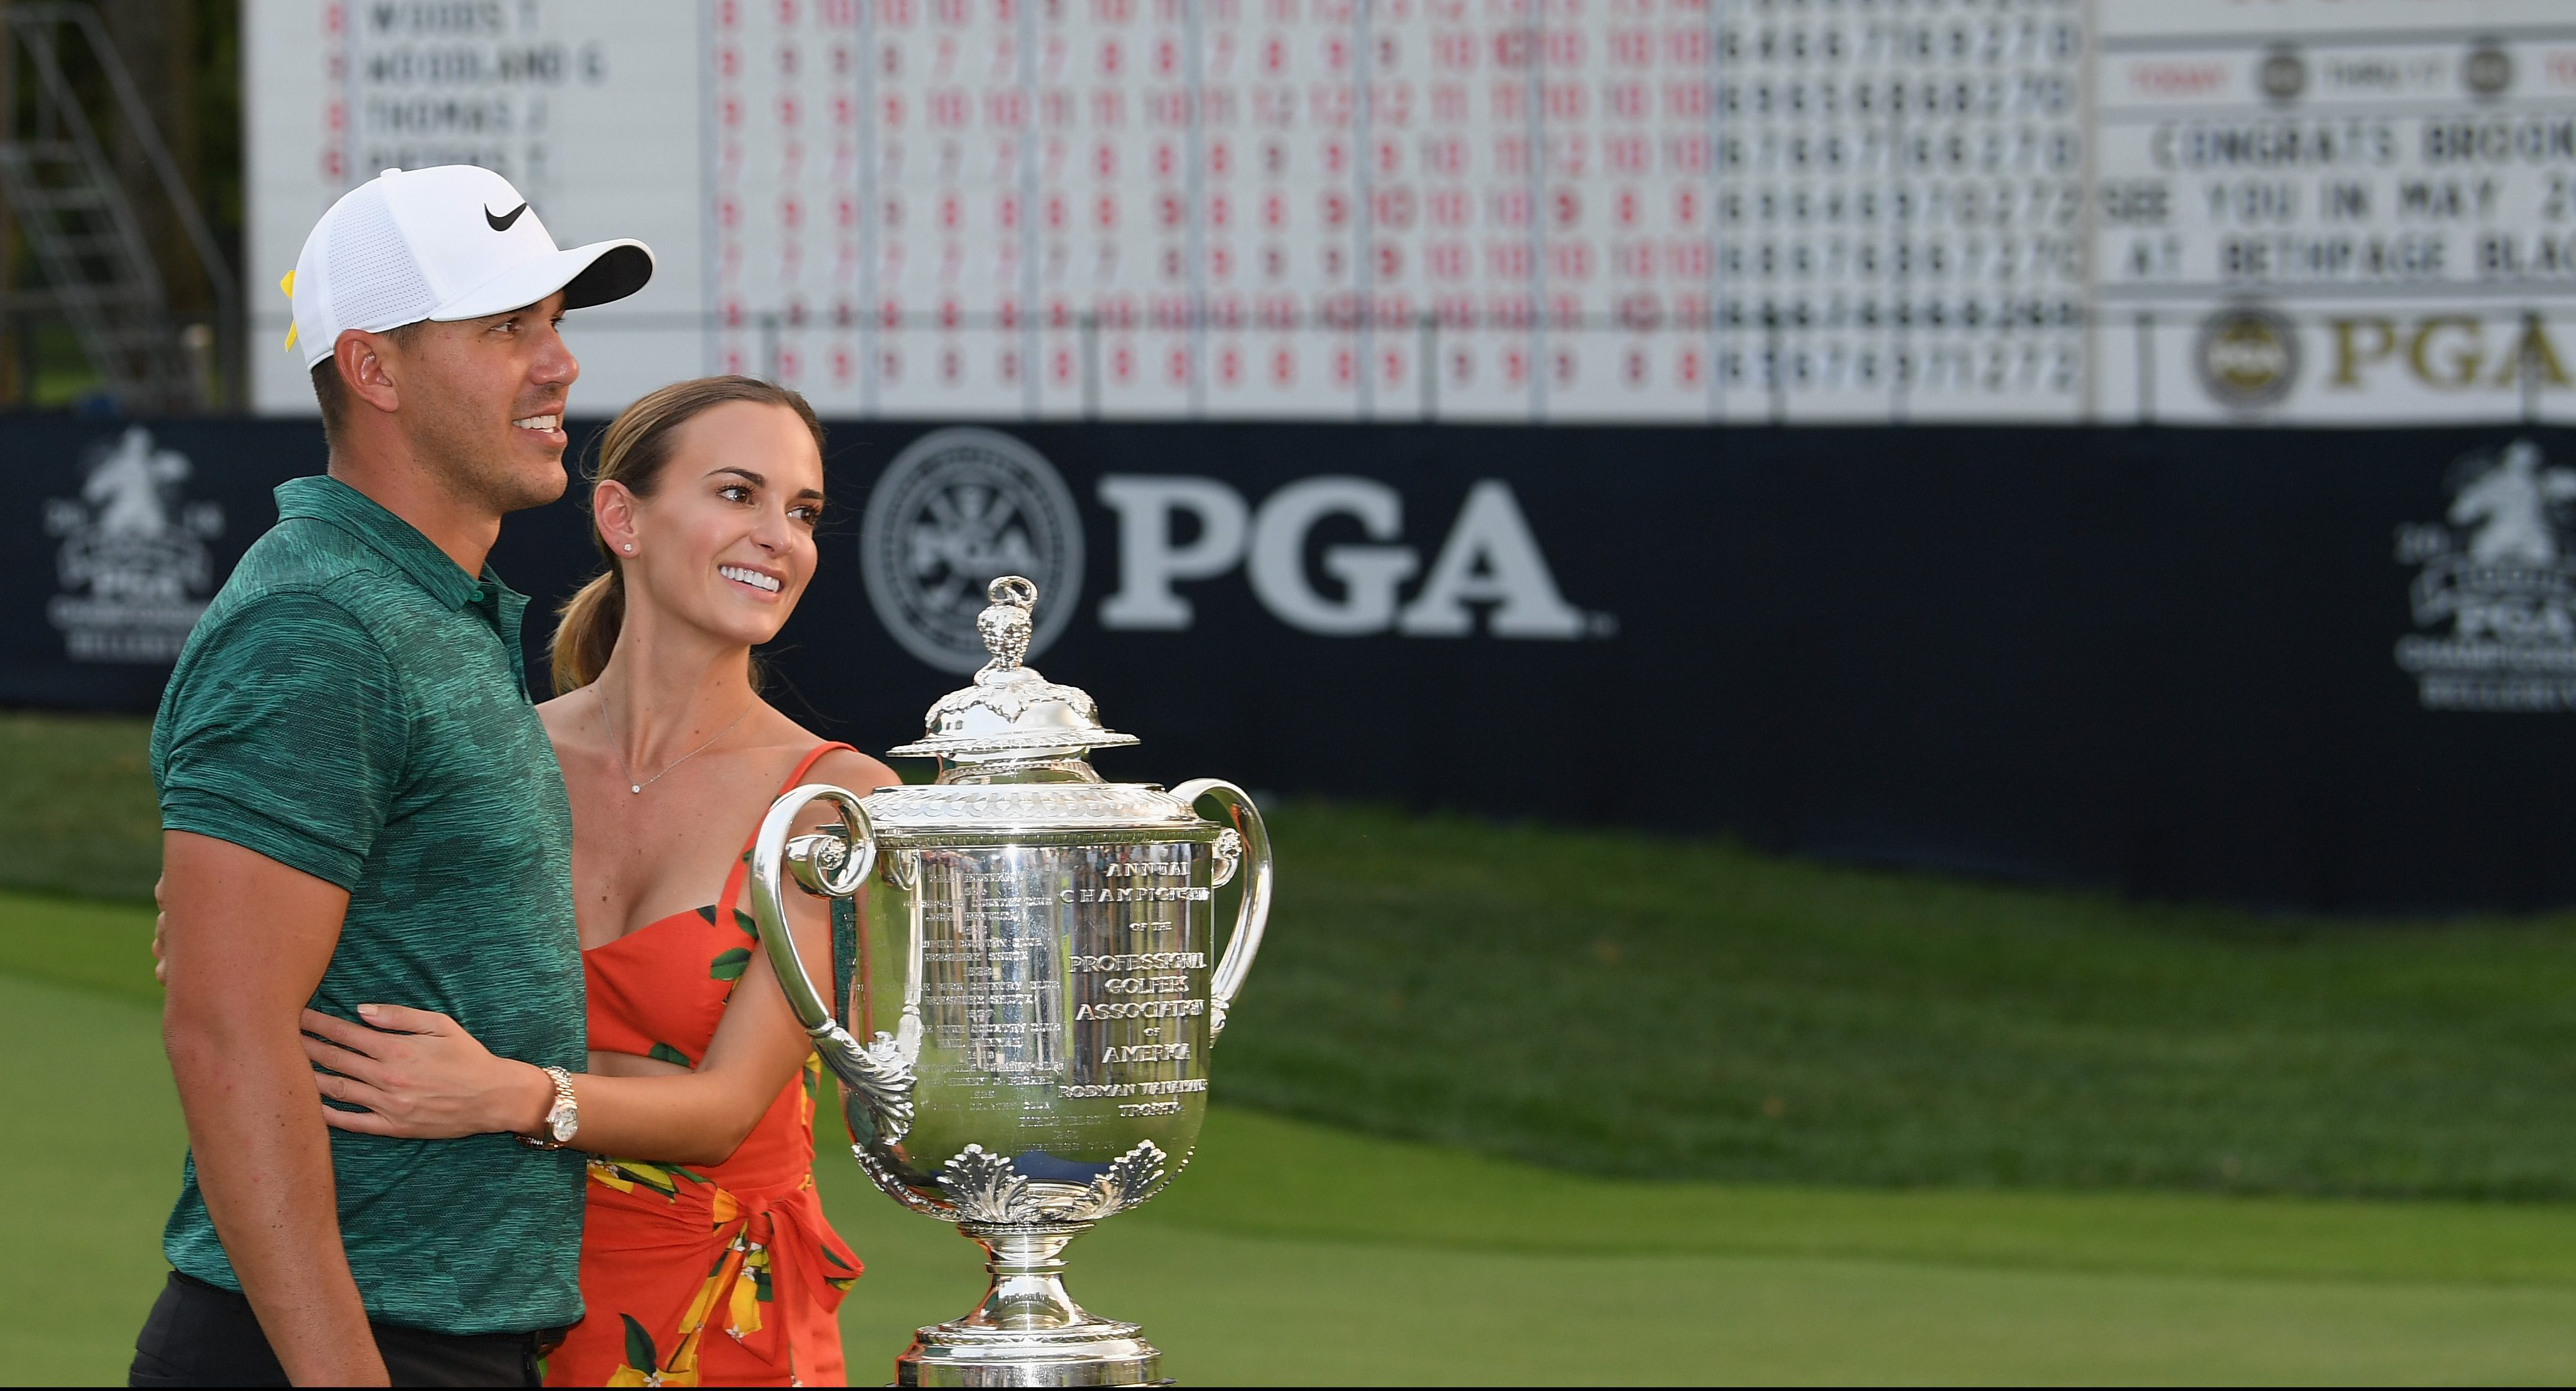 ST LOUIS, MO - AUGUST 12: Brooks Koepka of the United States poses with his girlfriend, Jena Sims, and the Wanamaker Trophy on the 18th green after winning the 2018 PGA Championship with a score of -16 at Bellerive Country Club on August 12, 2018 in St Louis, Missouri. (Photo by Ross Kinnaird/Getty Images)